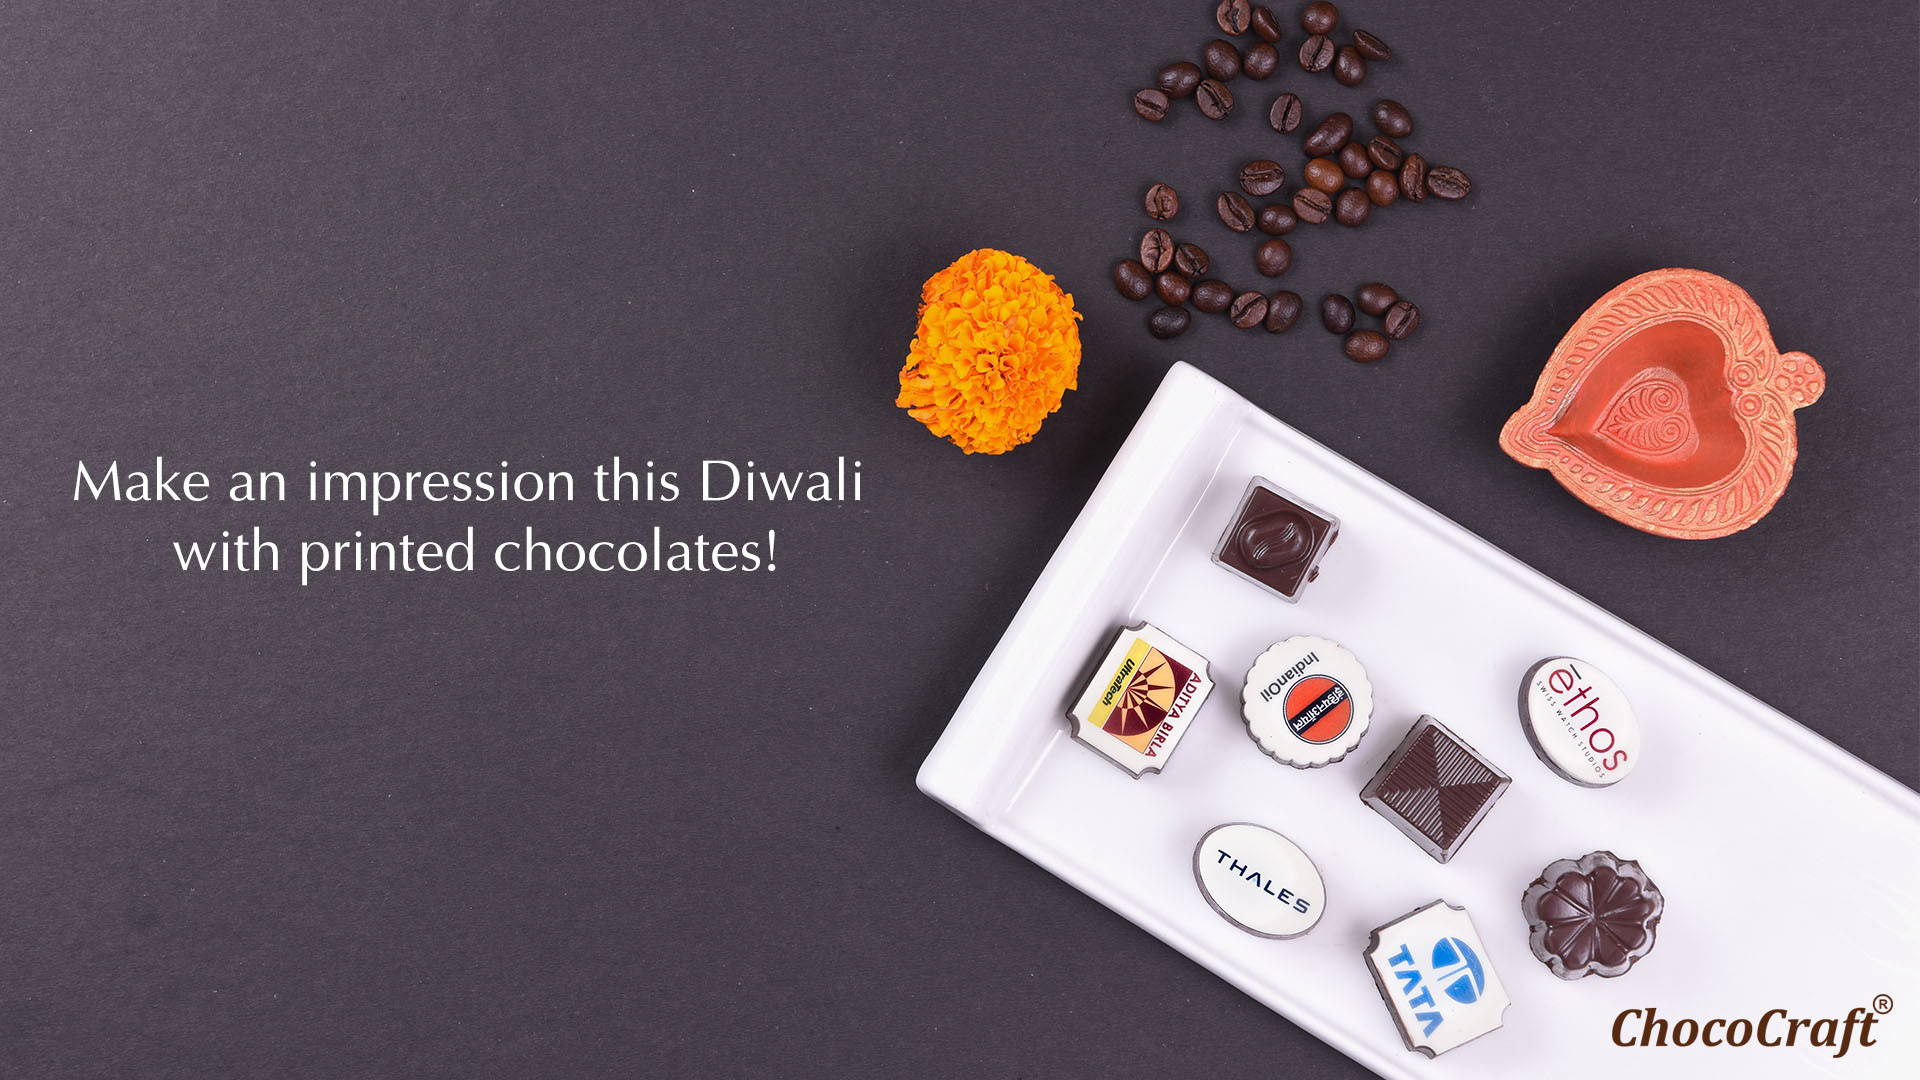 Diwali Gifts for Clients with Printed Chocolates Banner (Desktop)